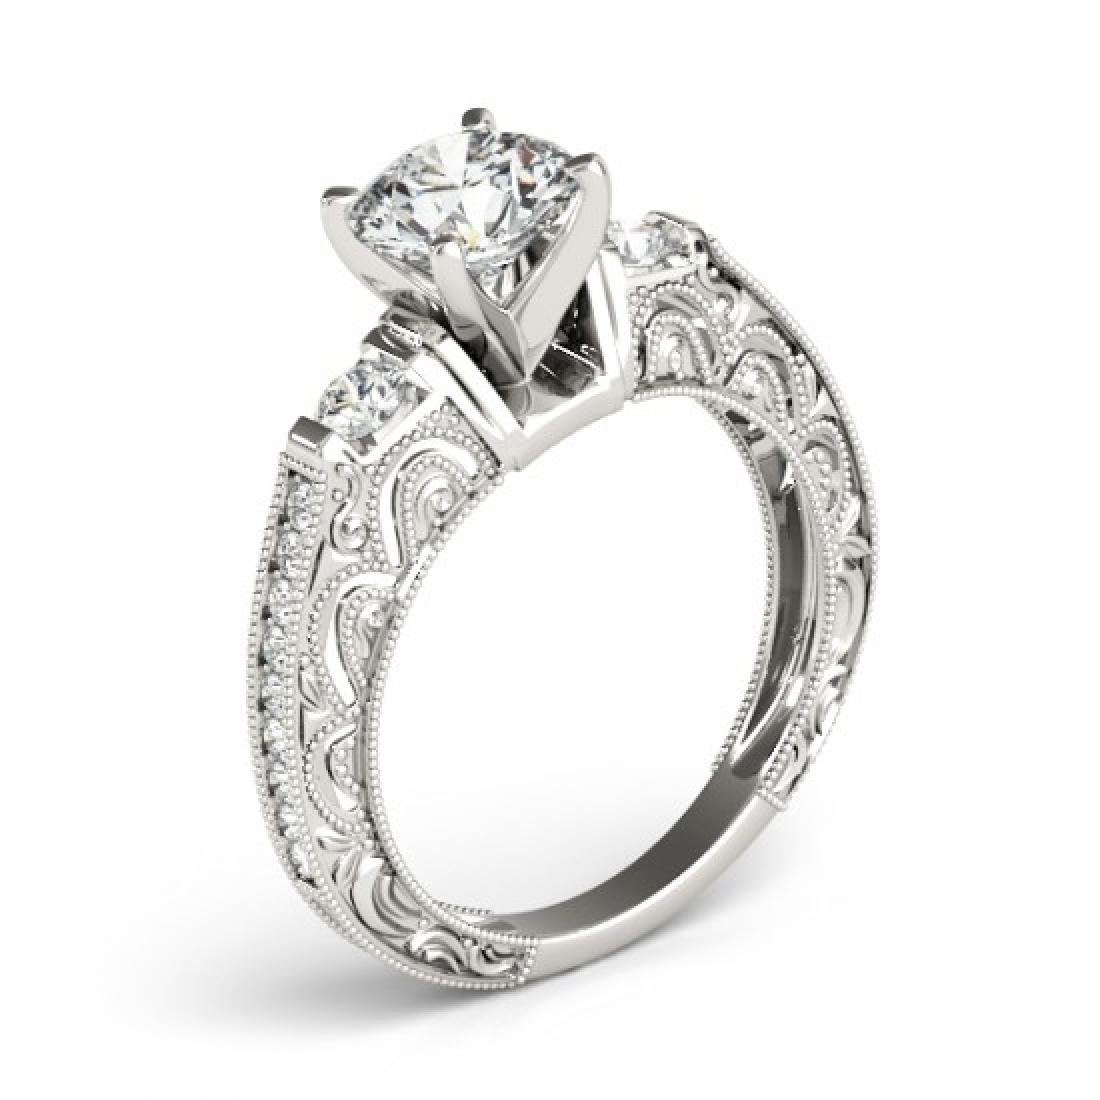 1.38 CTW Certified VS/SI Diamond Solitaire Antique Ring - 3